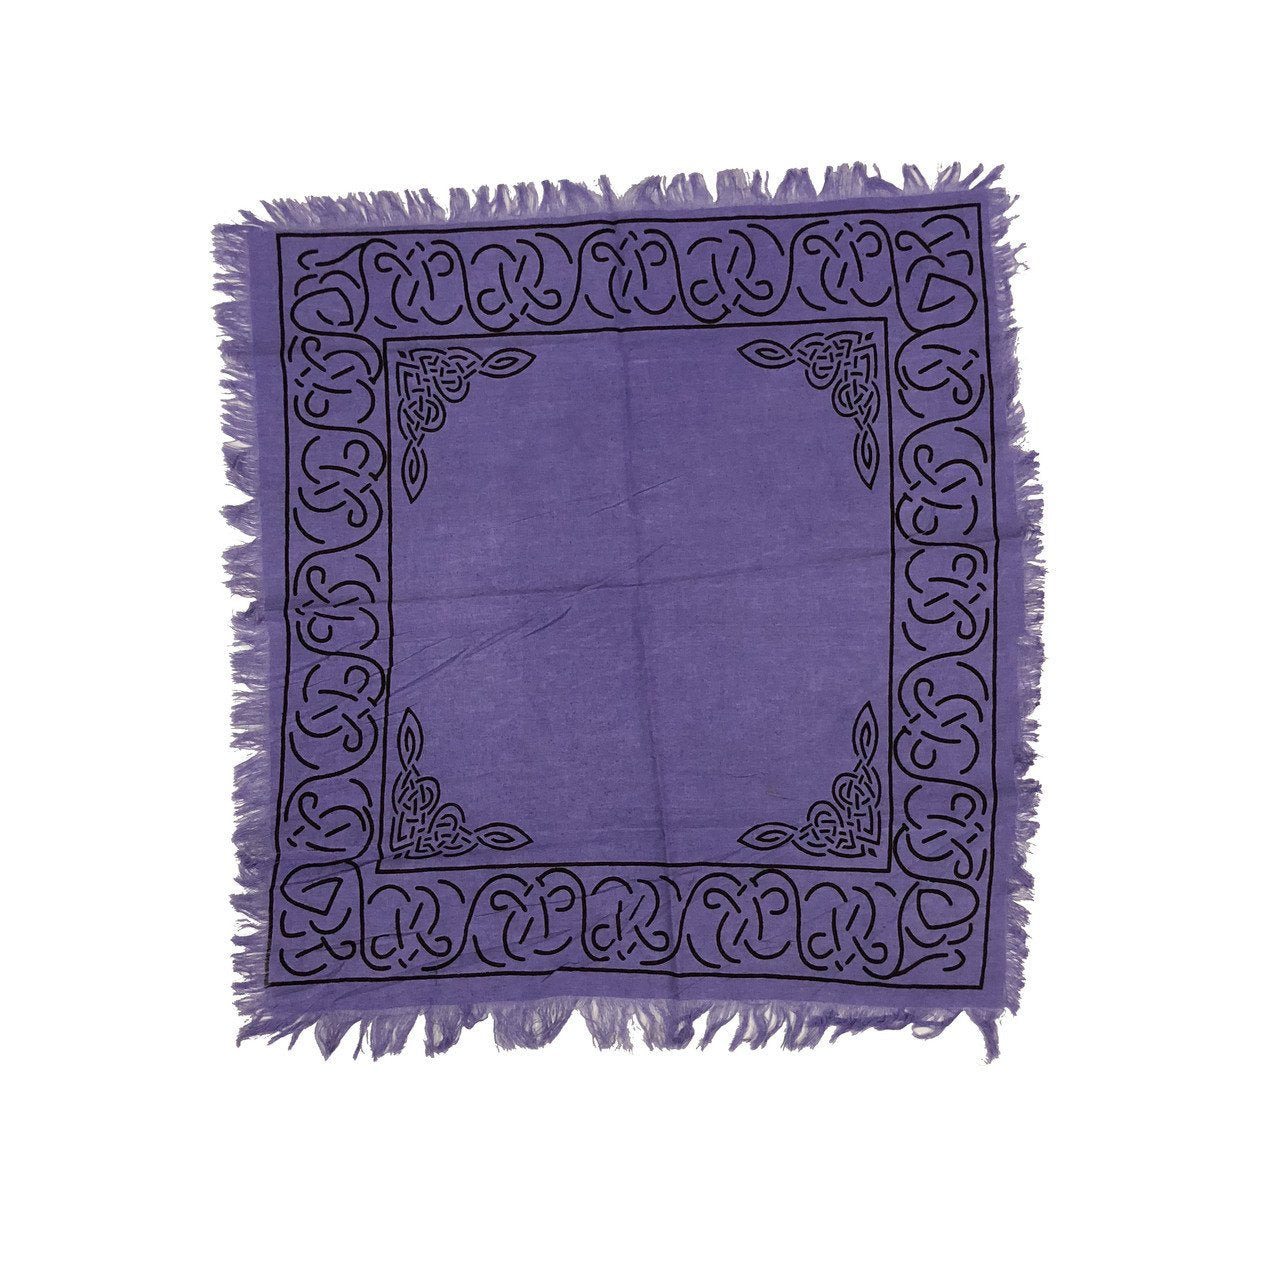 ORNATE ALTAR CLOTH